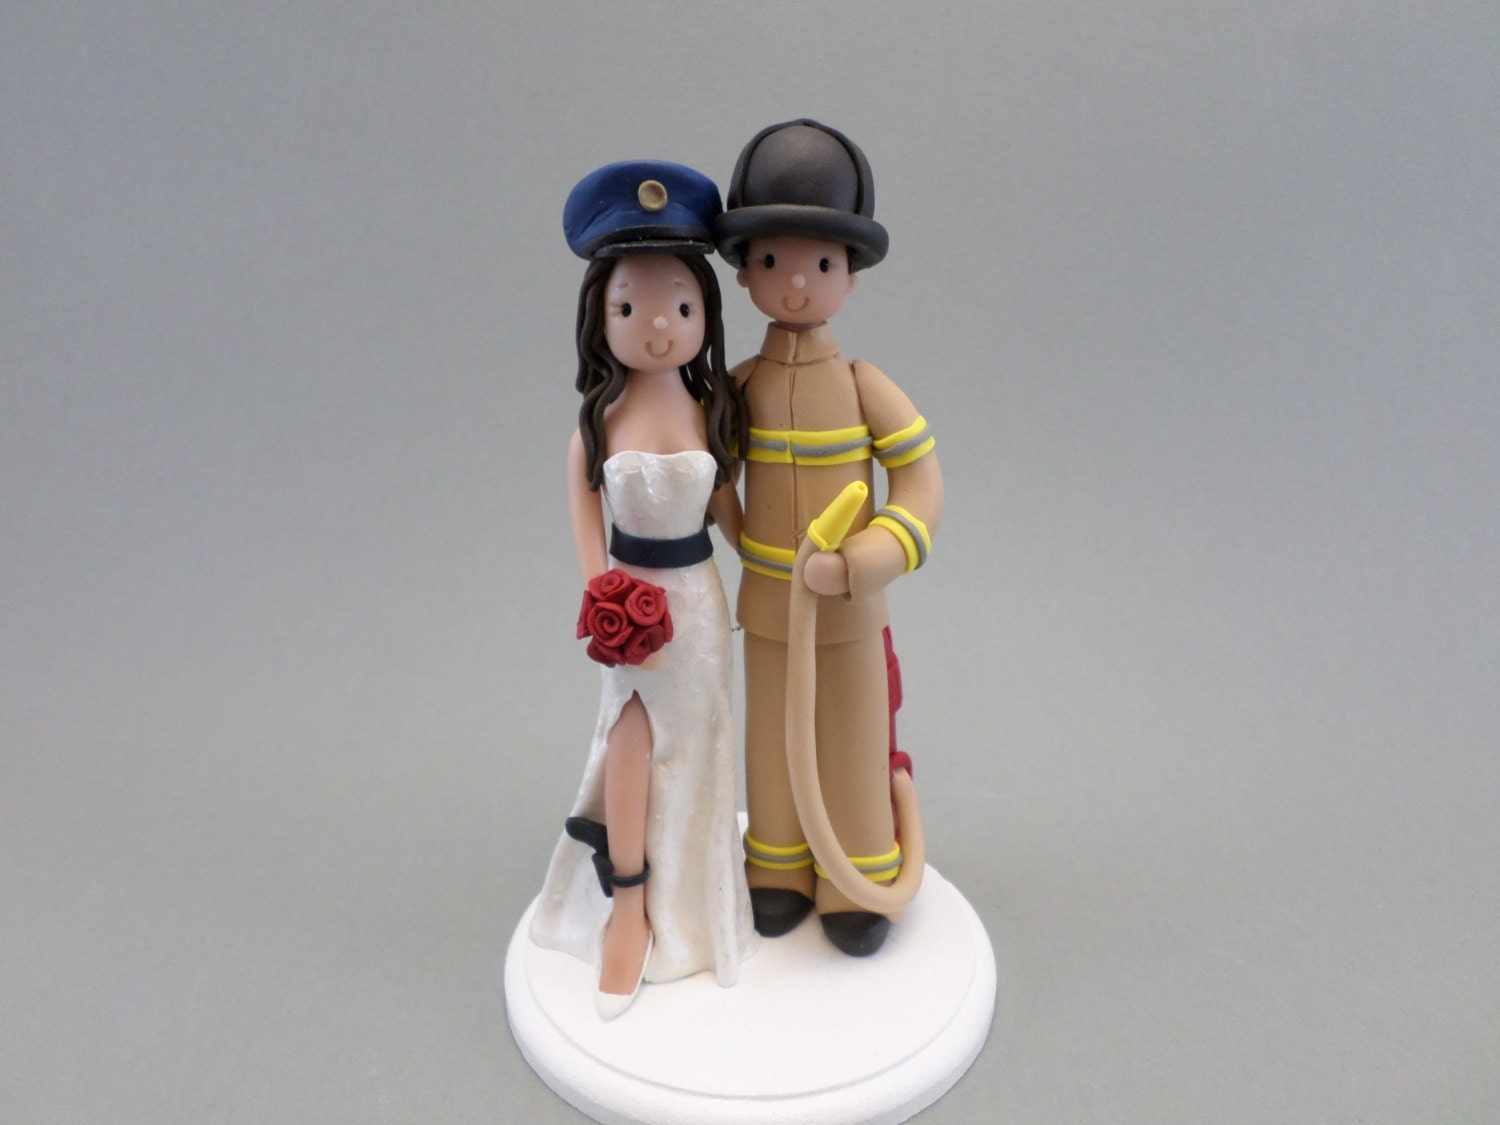 fireman cake toppers for wedding cakes firefighter amp policewoman customized wedding cake topper 14270